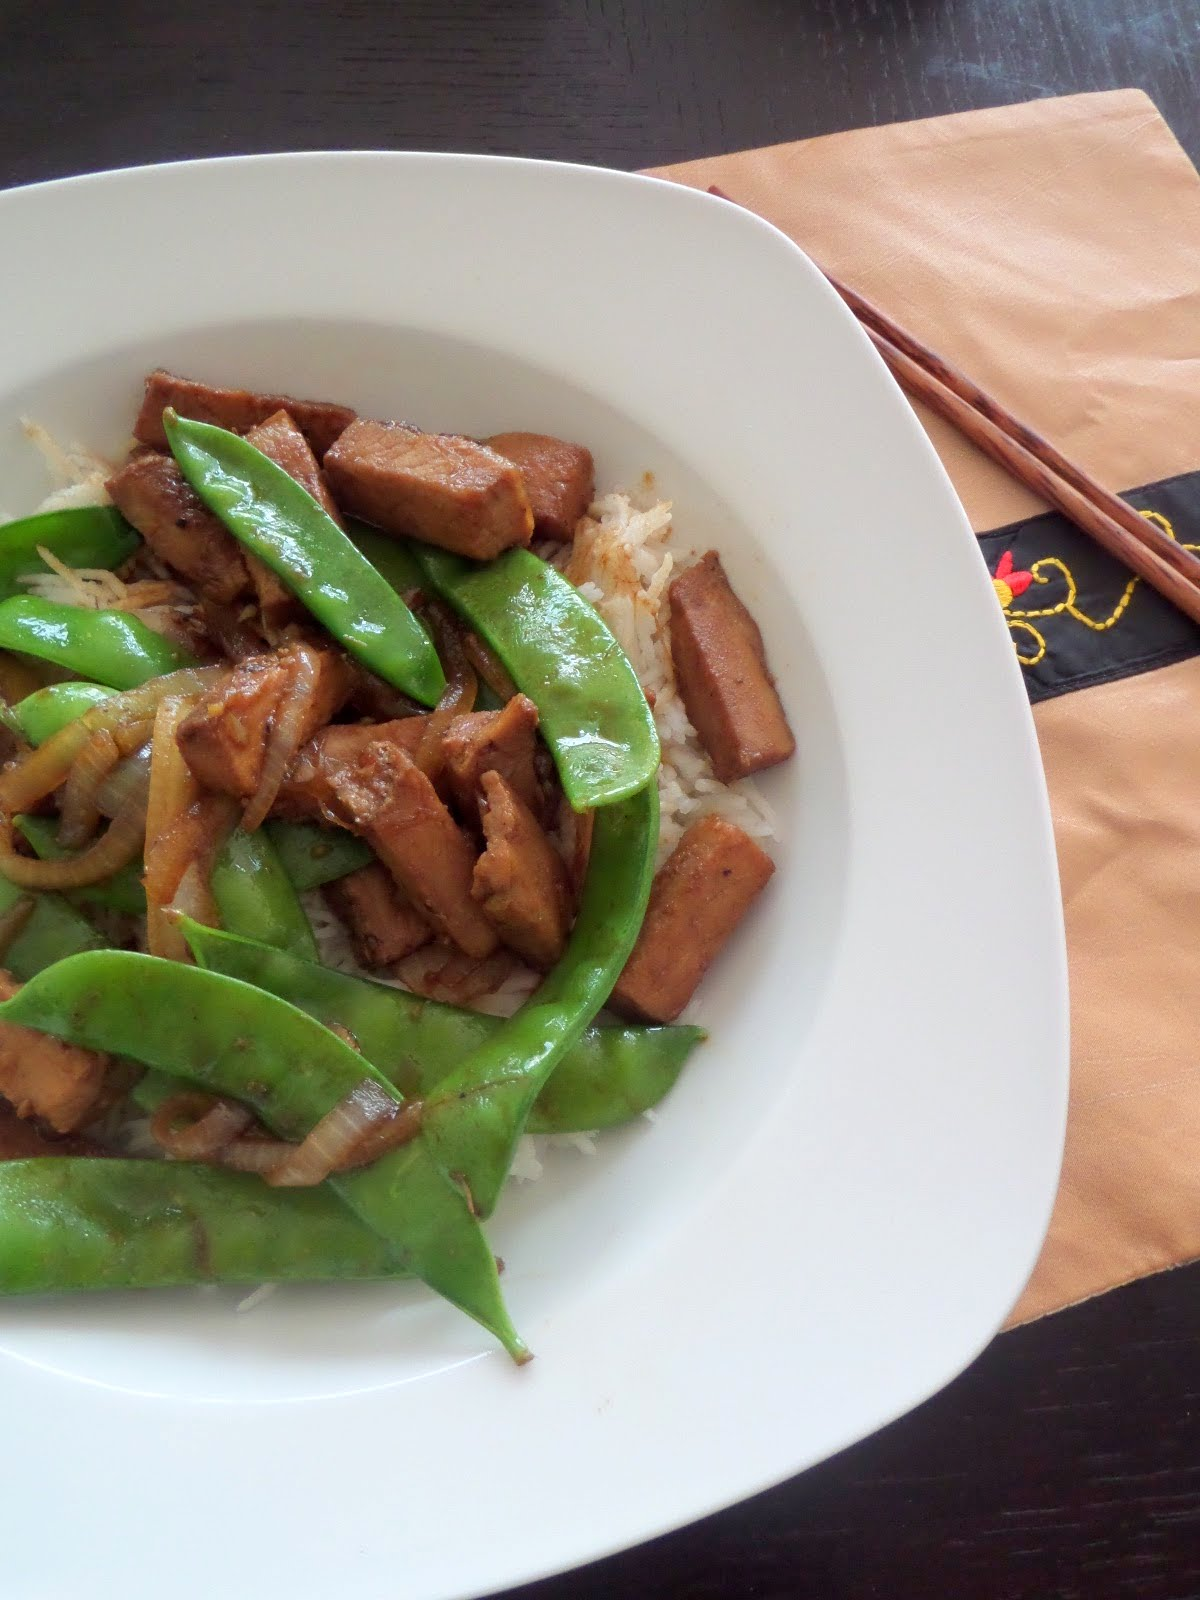 Pork and Peas Stir Fry:  A sweet and spicy stir fry made with leftover Herb Roasted Pork Tenderloin and a variety of peas.